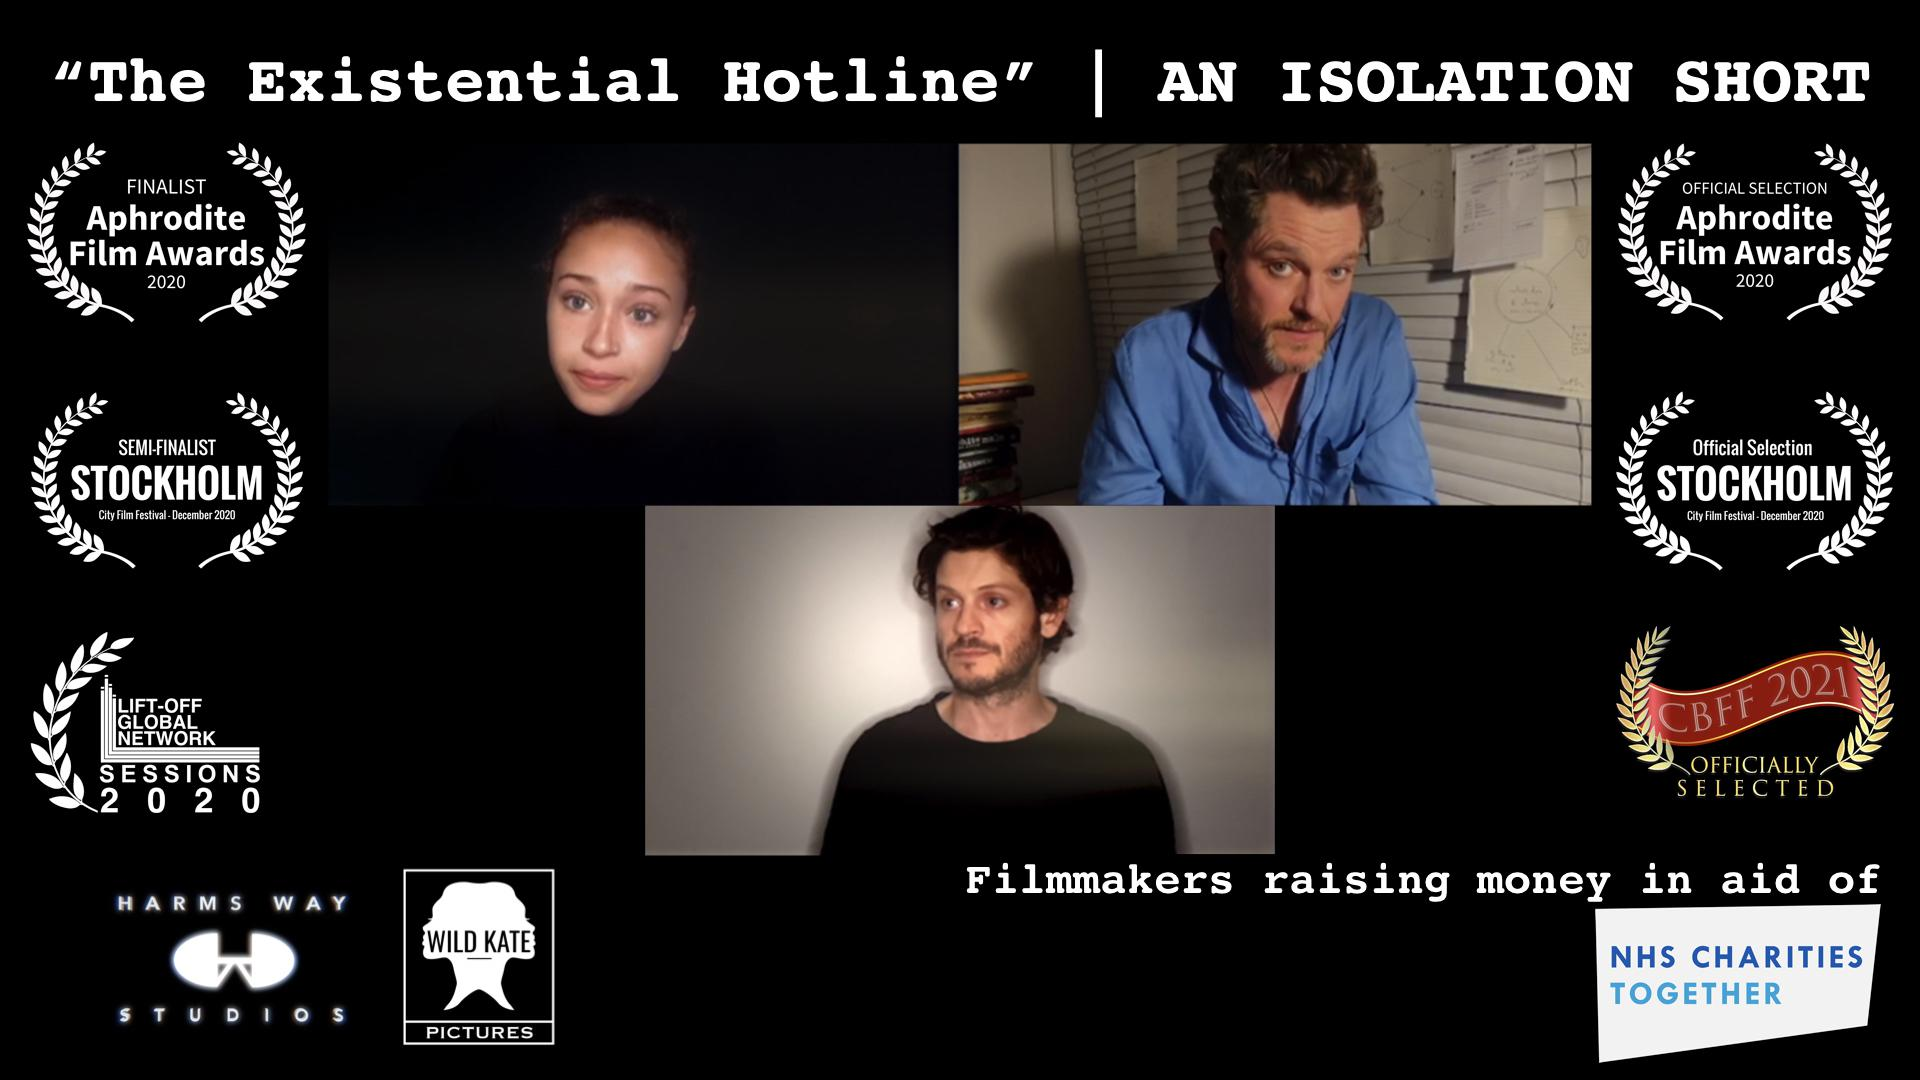 The Existential Hotline